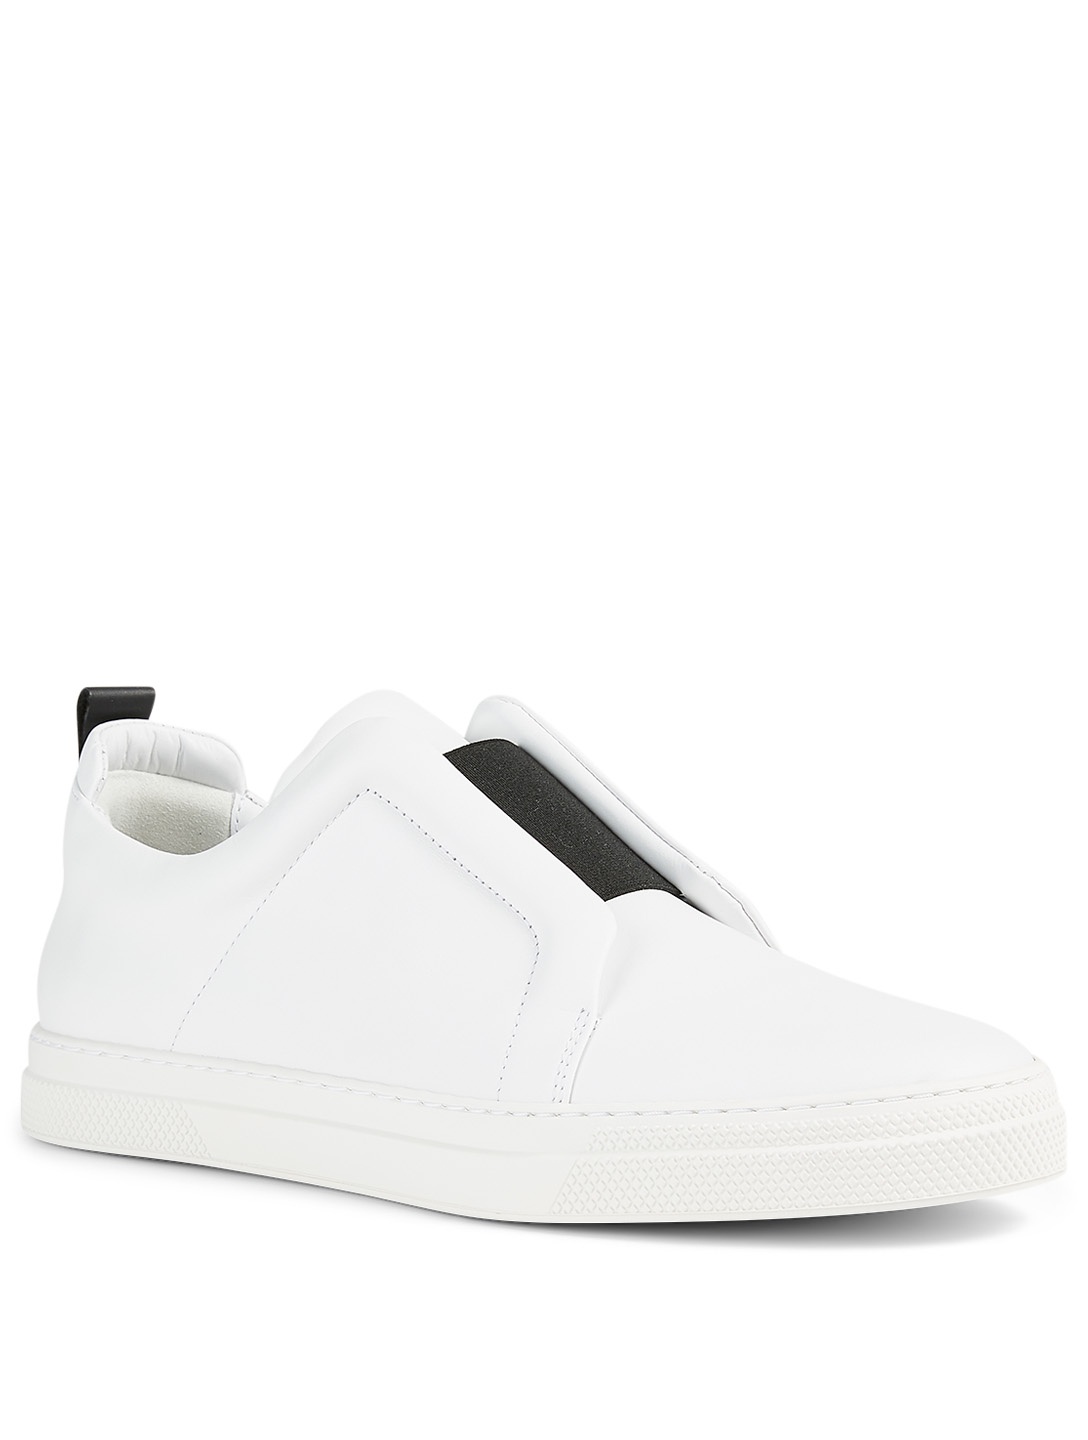 PIERRE HARDY Cotton Drill Slip-On Sneakers Men's White